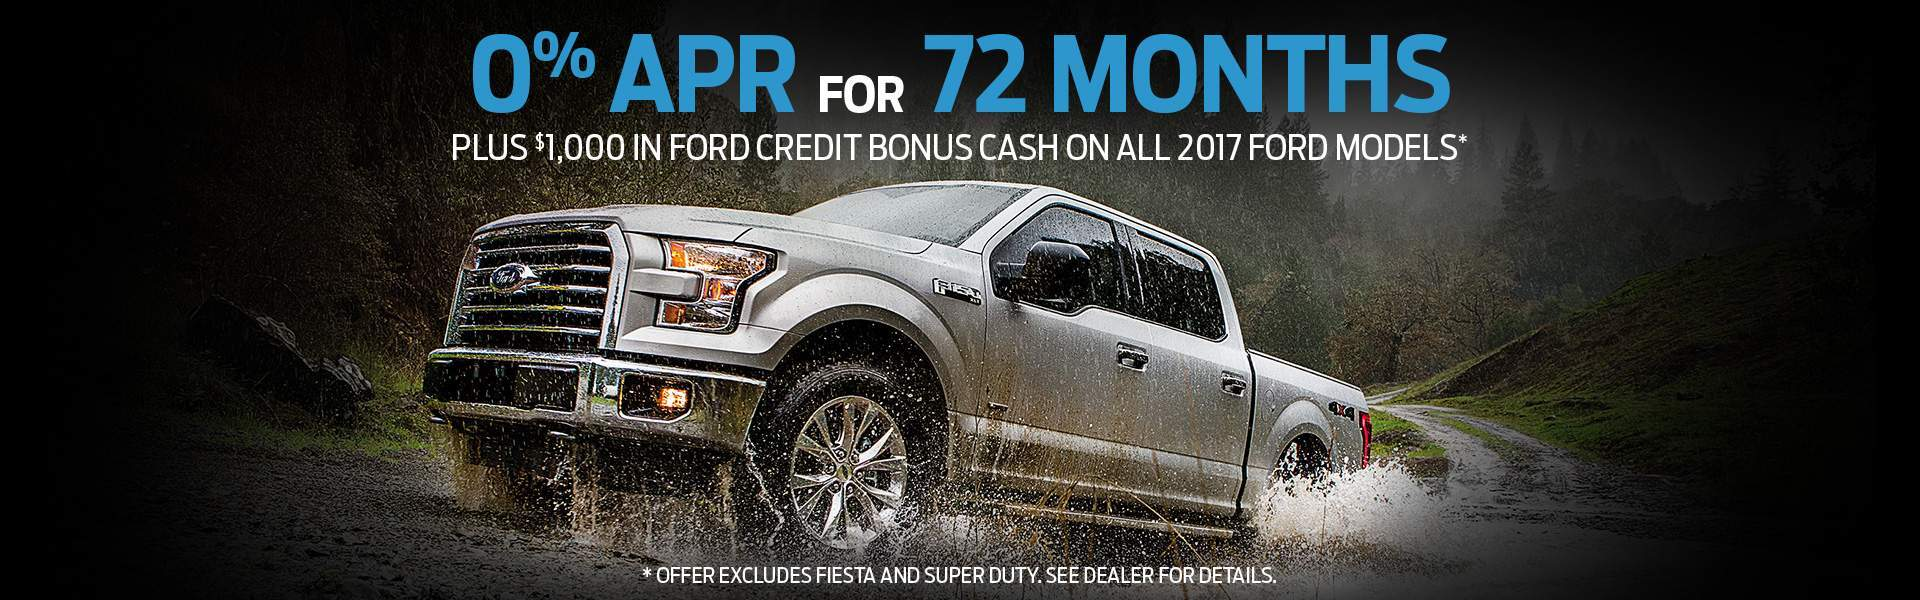 0% APR for 72 moonths